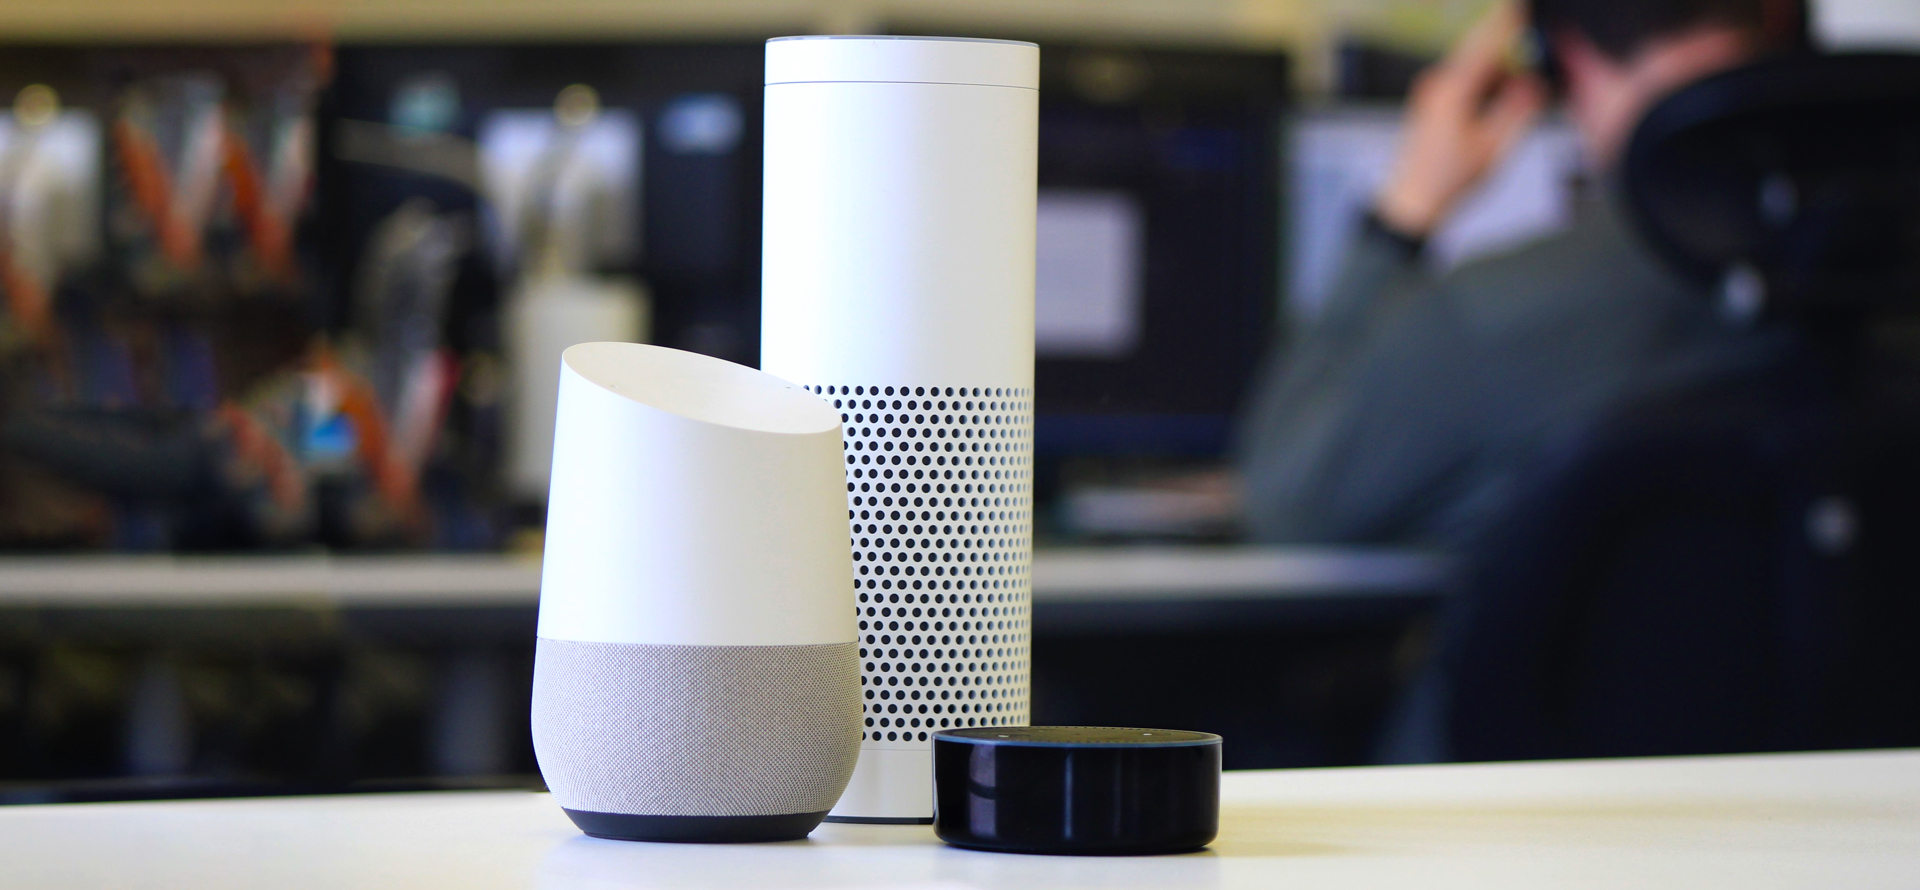 Image of google home, amazon echo, and amazon echo dot devices sitting on a desk